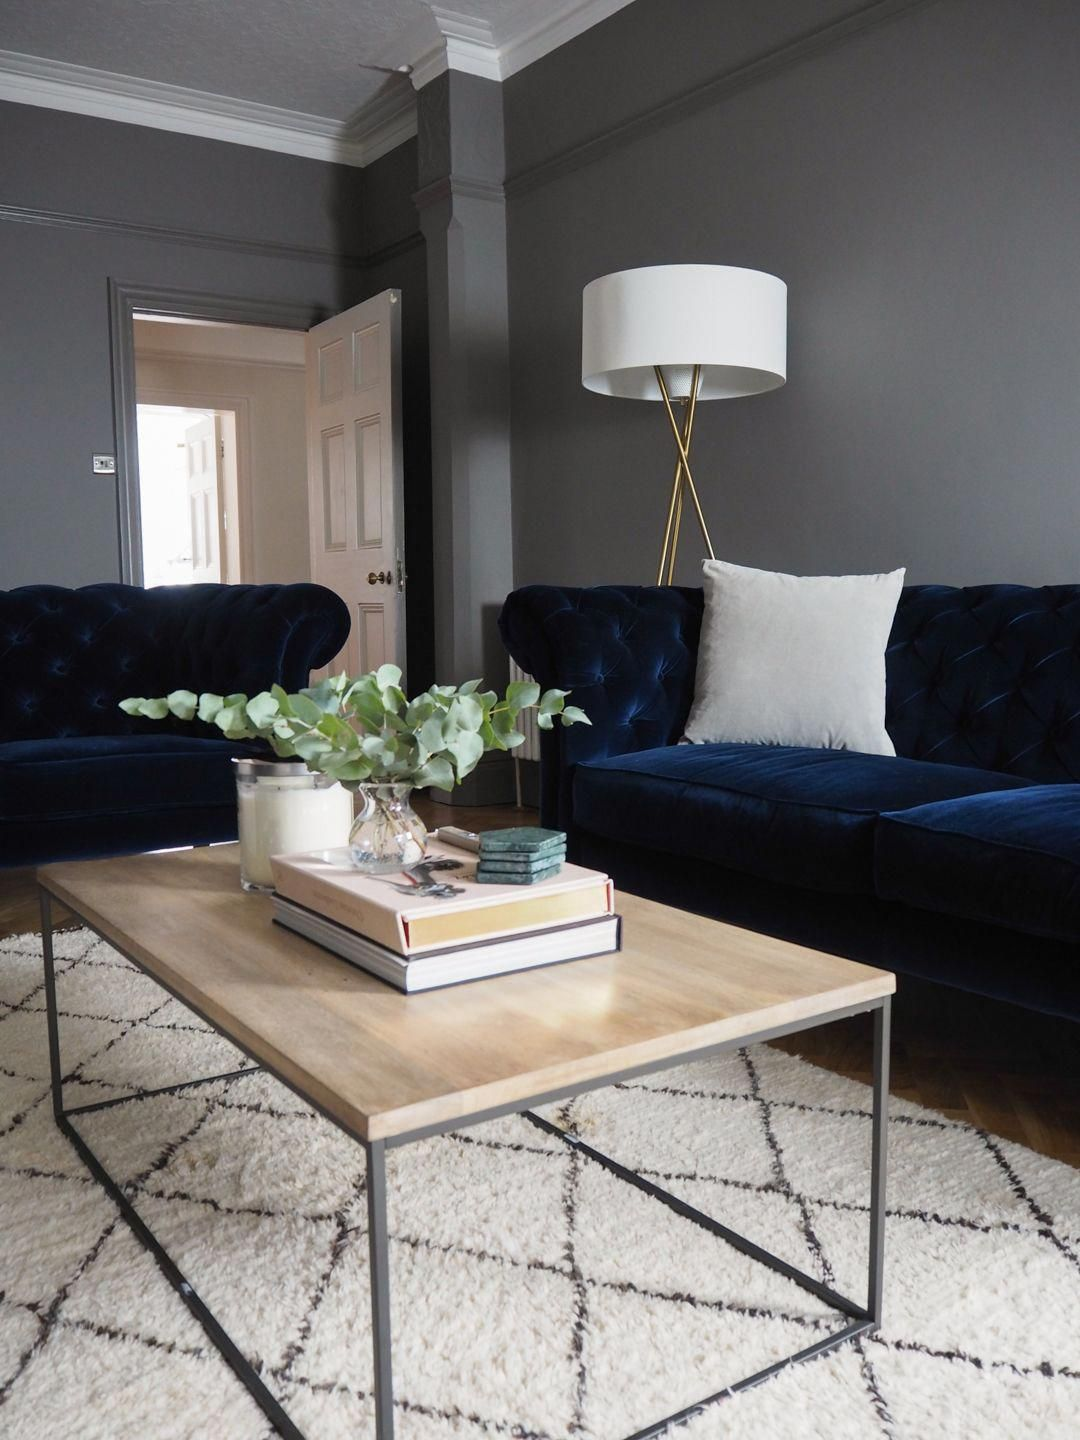 Our Living Room Adding The Final Touches With West Elm Dark